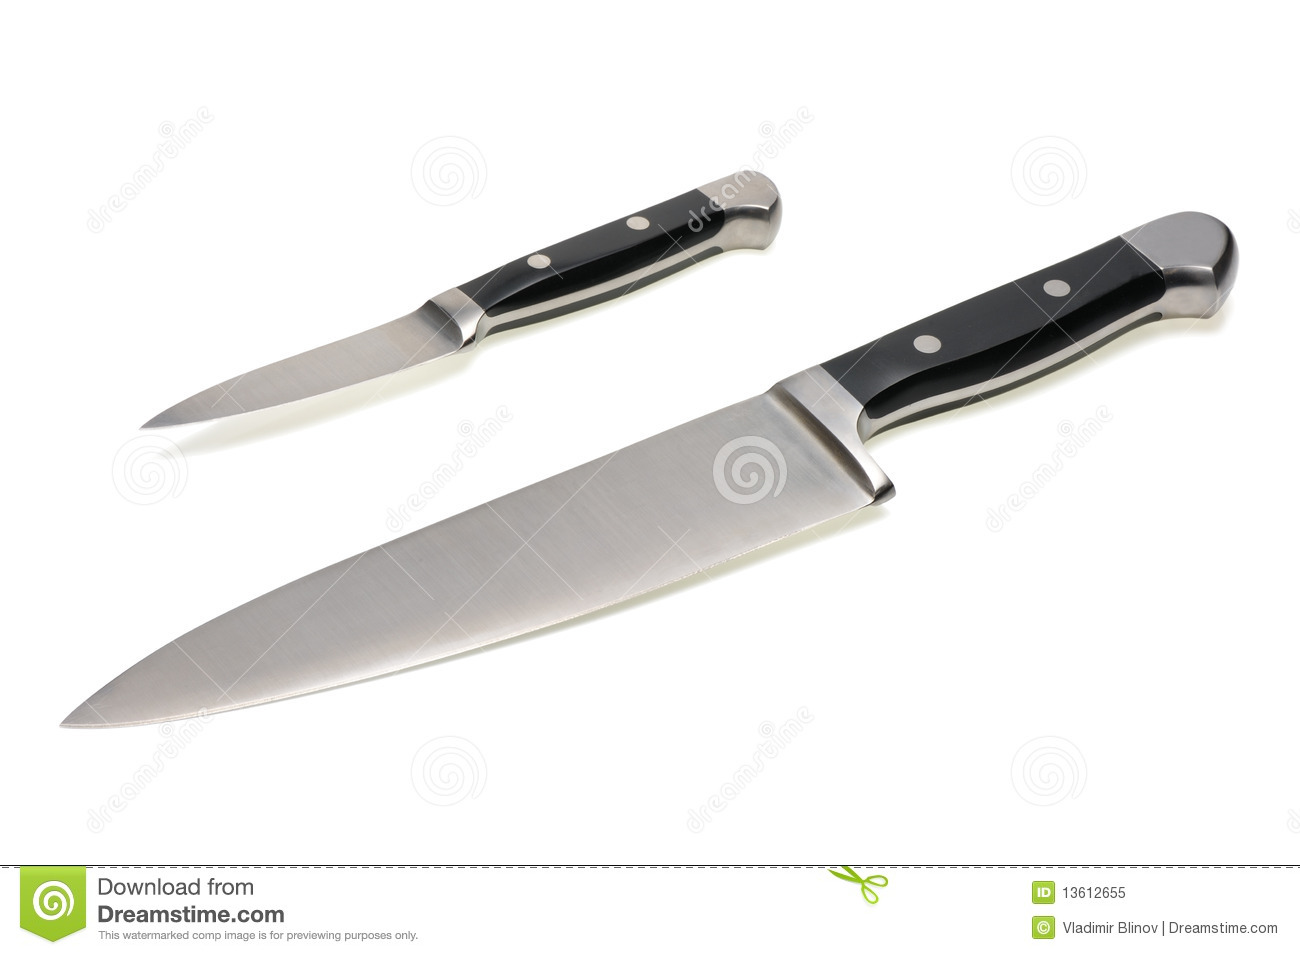 Two forged steel kitchen knife on a white background, isolated.